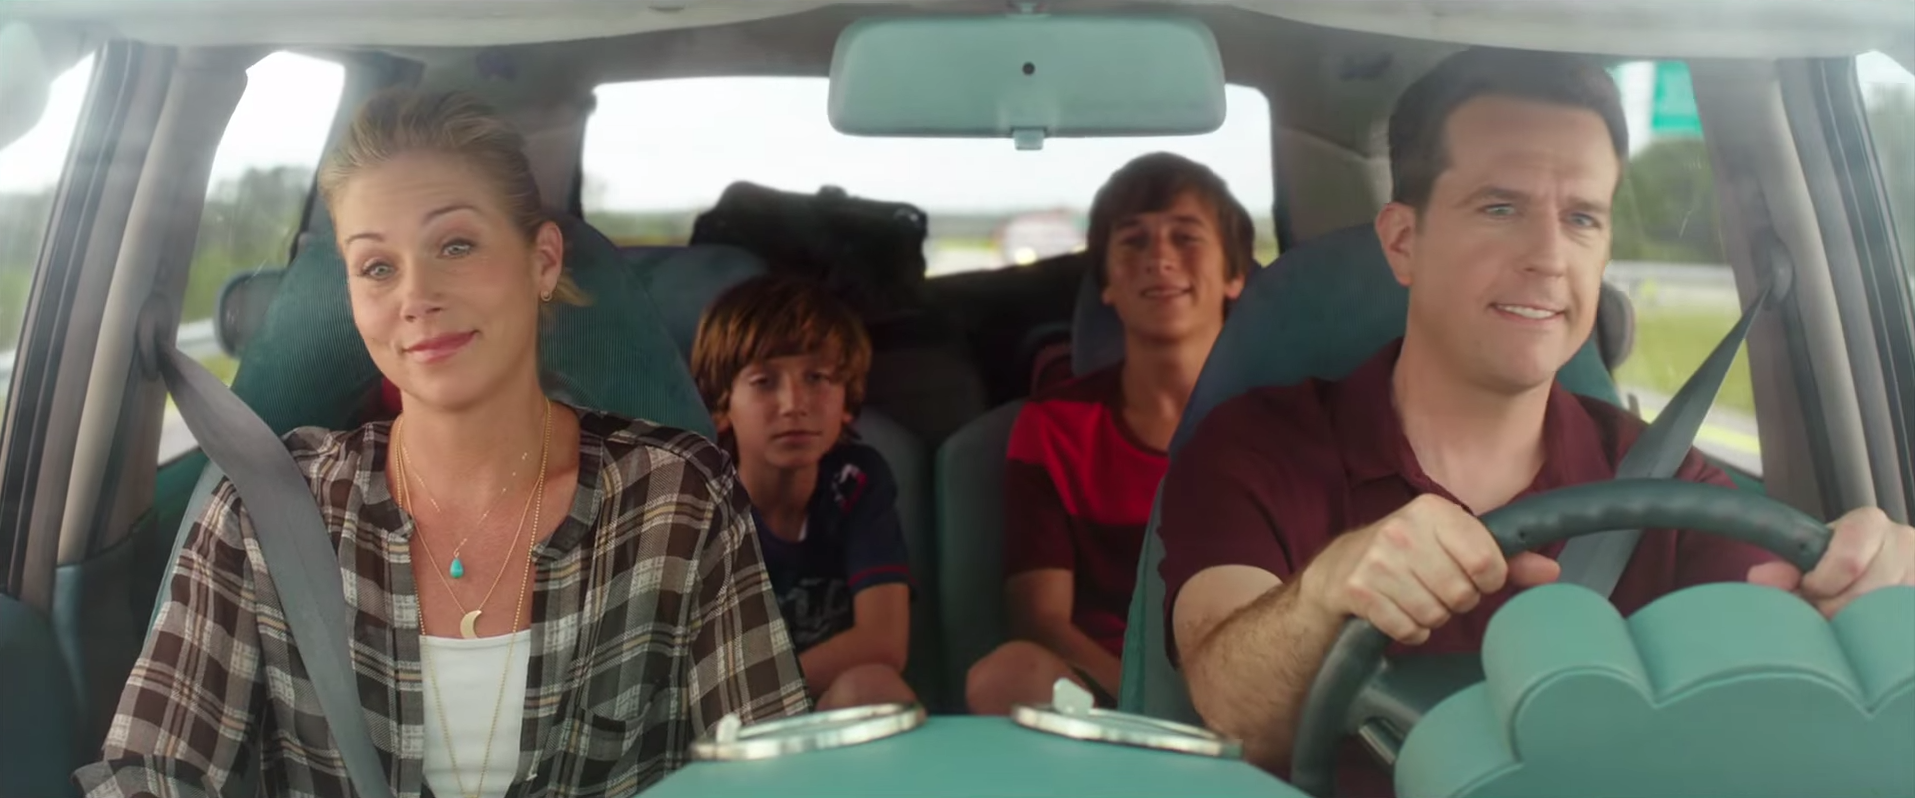 The Griswolds Hit Road In Red Band Vacation Trailer NSFW Video